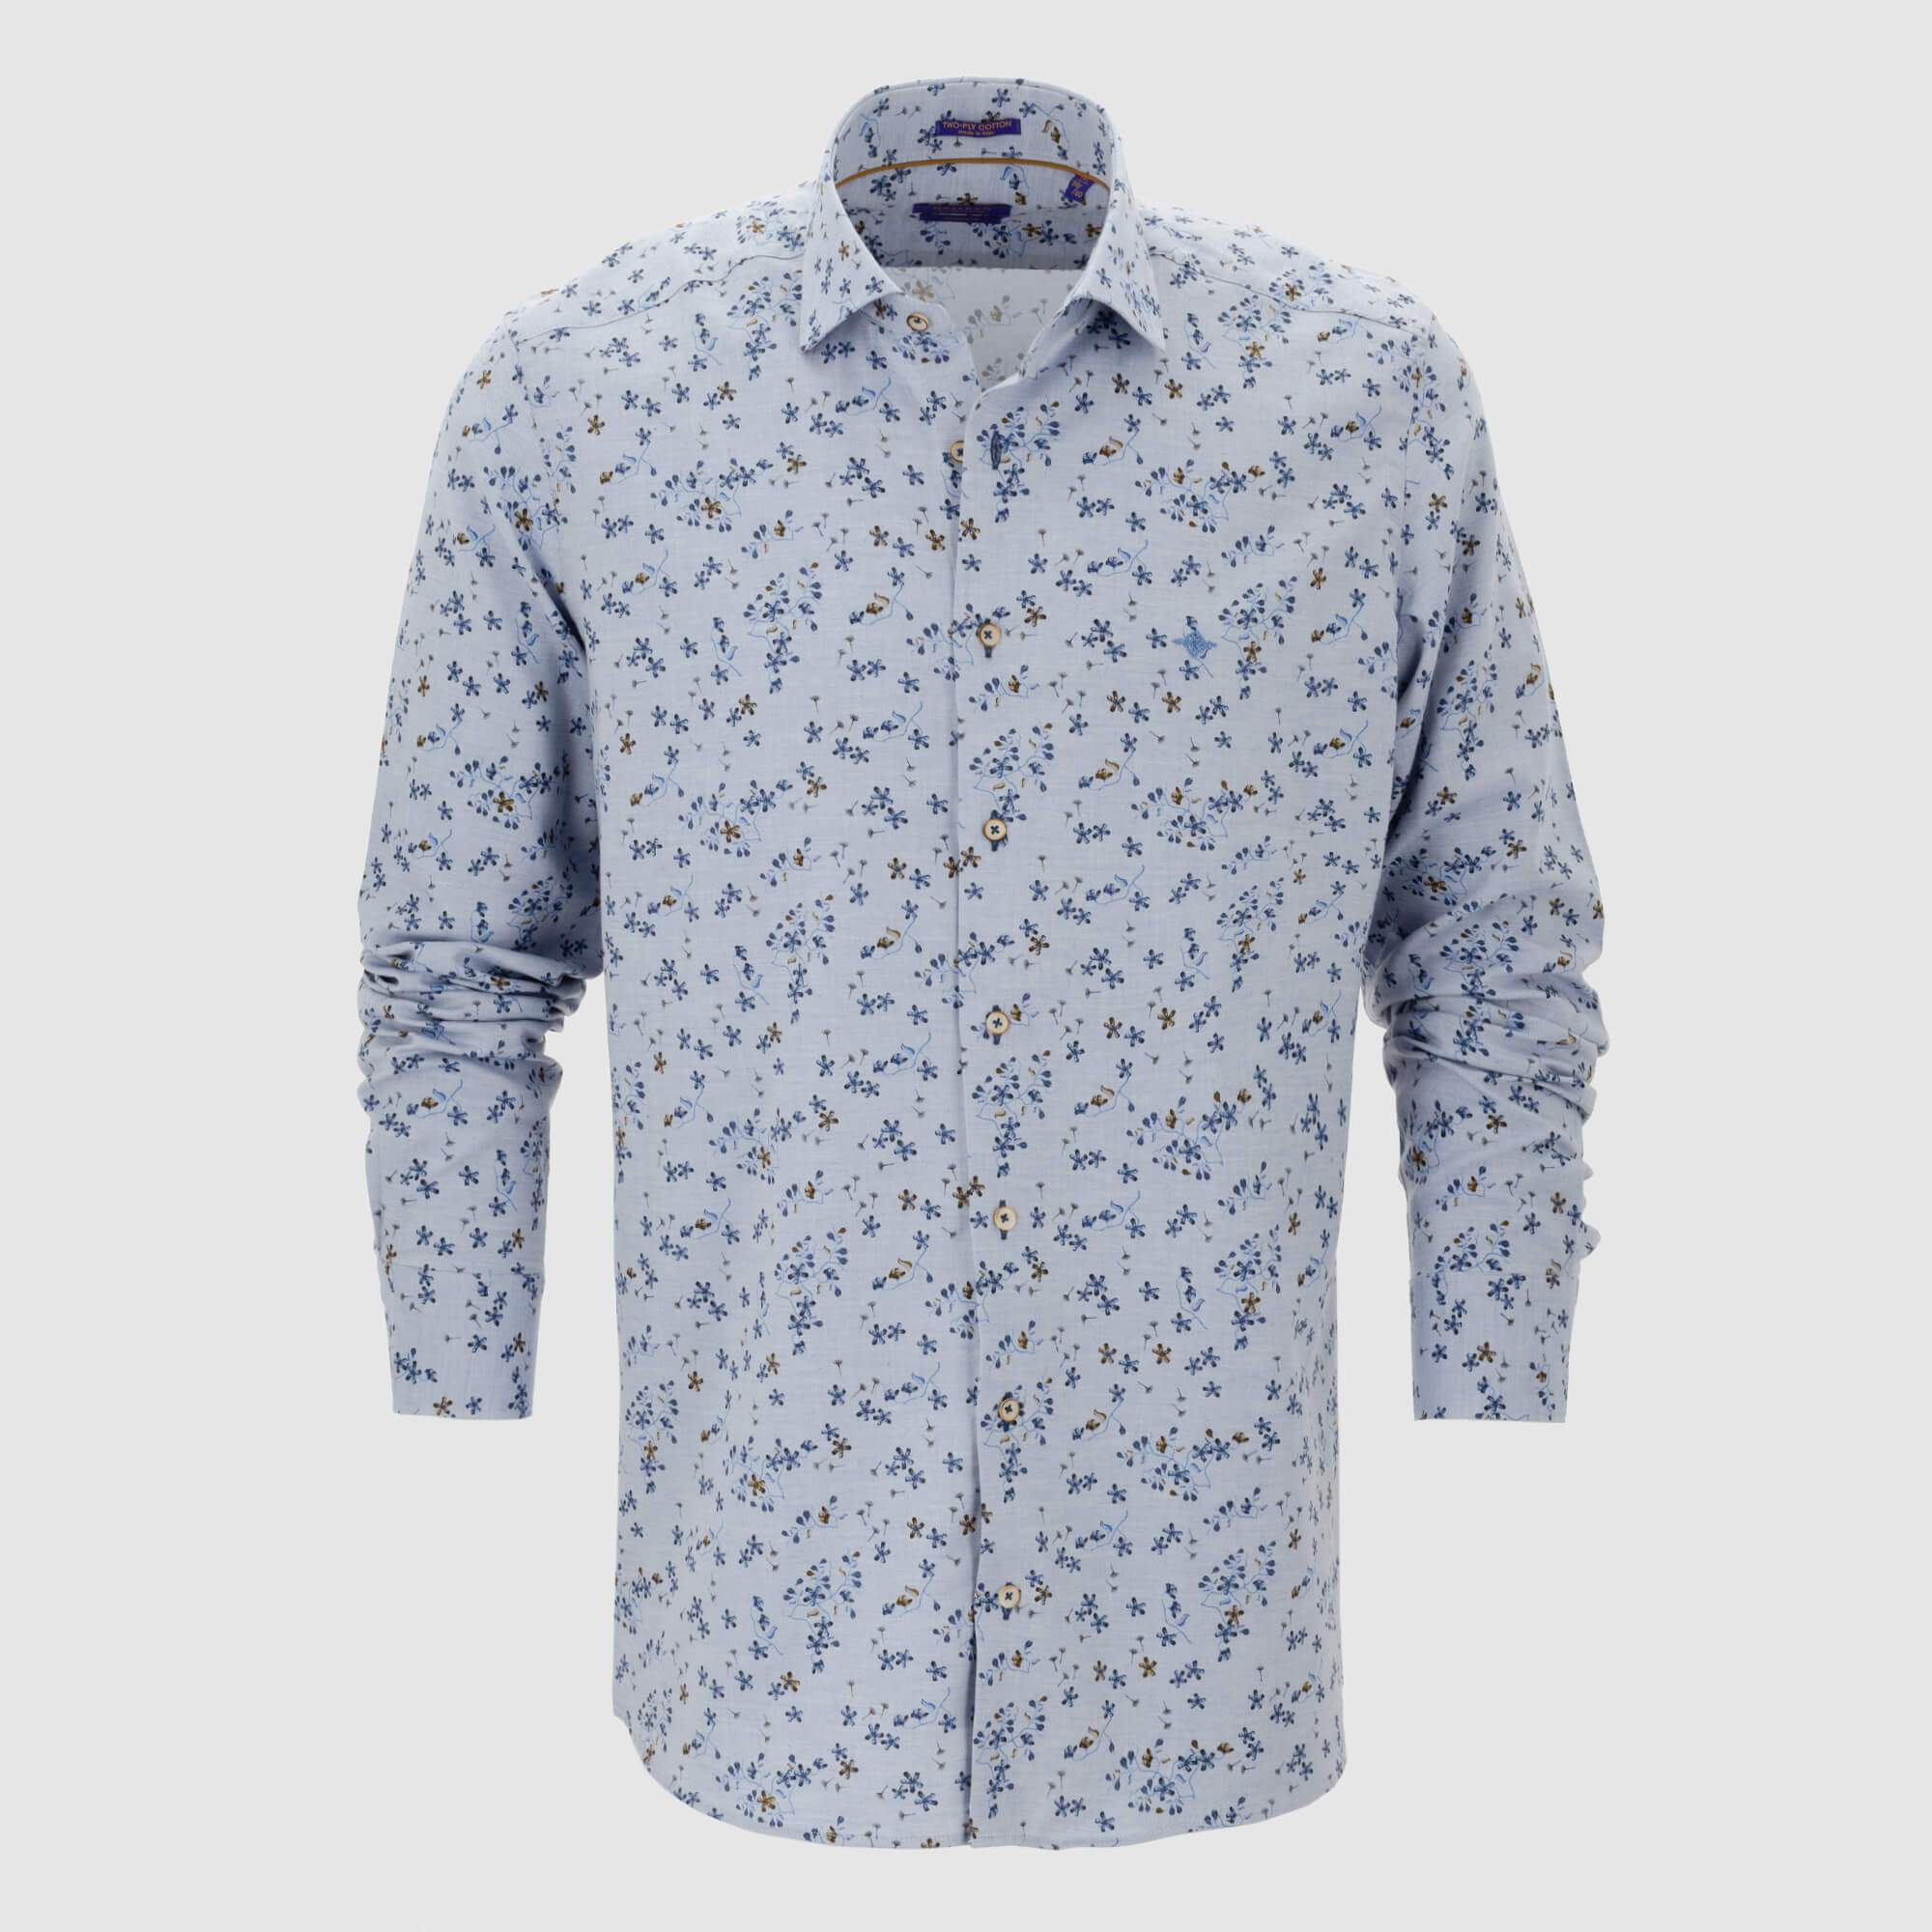 Camisa estampada diseño exclusivo slim fit 927509